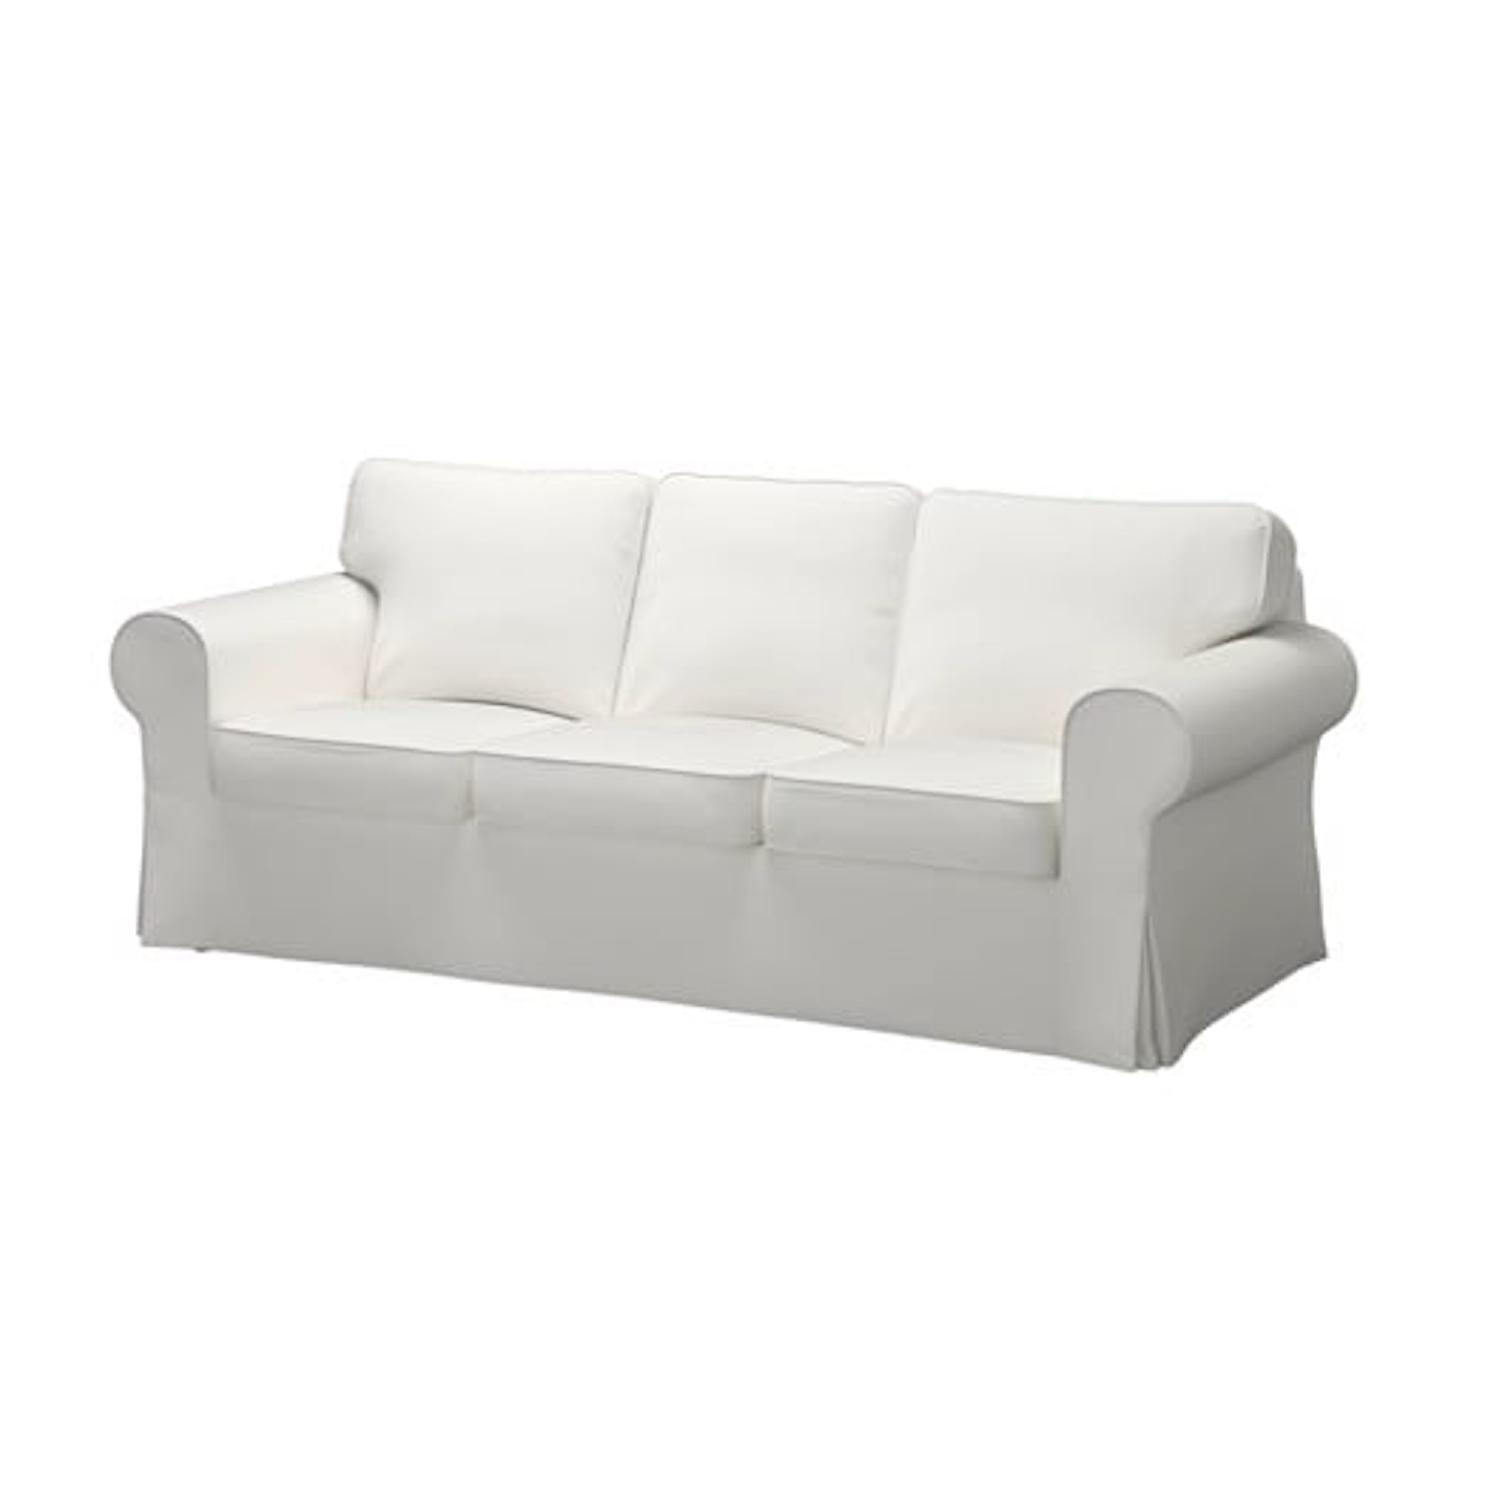 Ordinaire Ikea Ektorp White Canvas Sofa ...